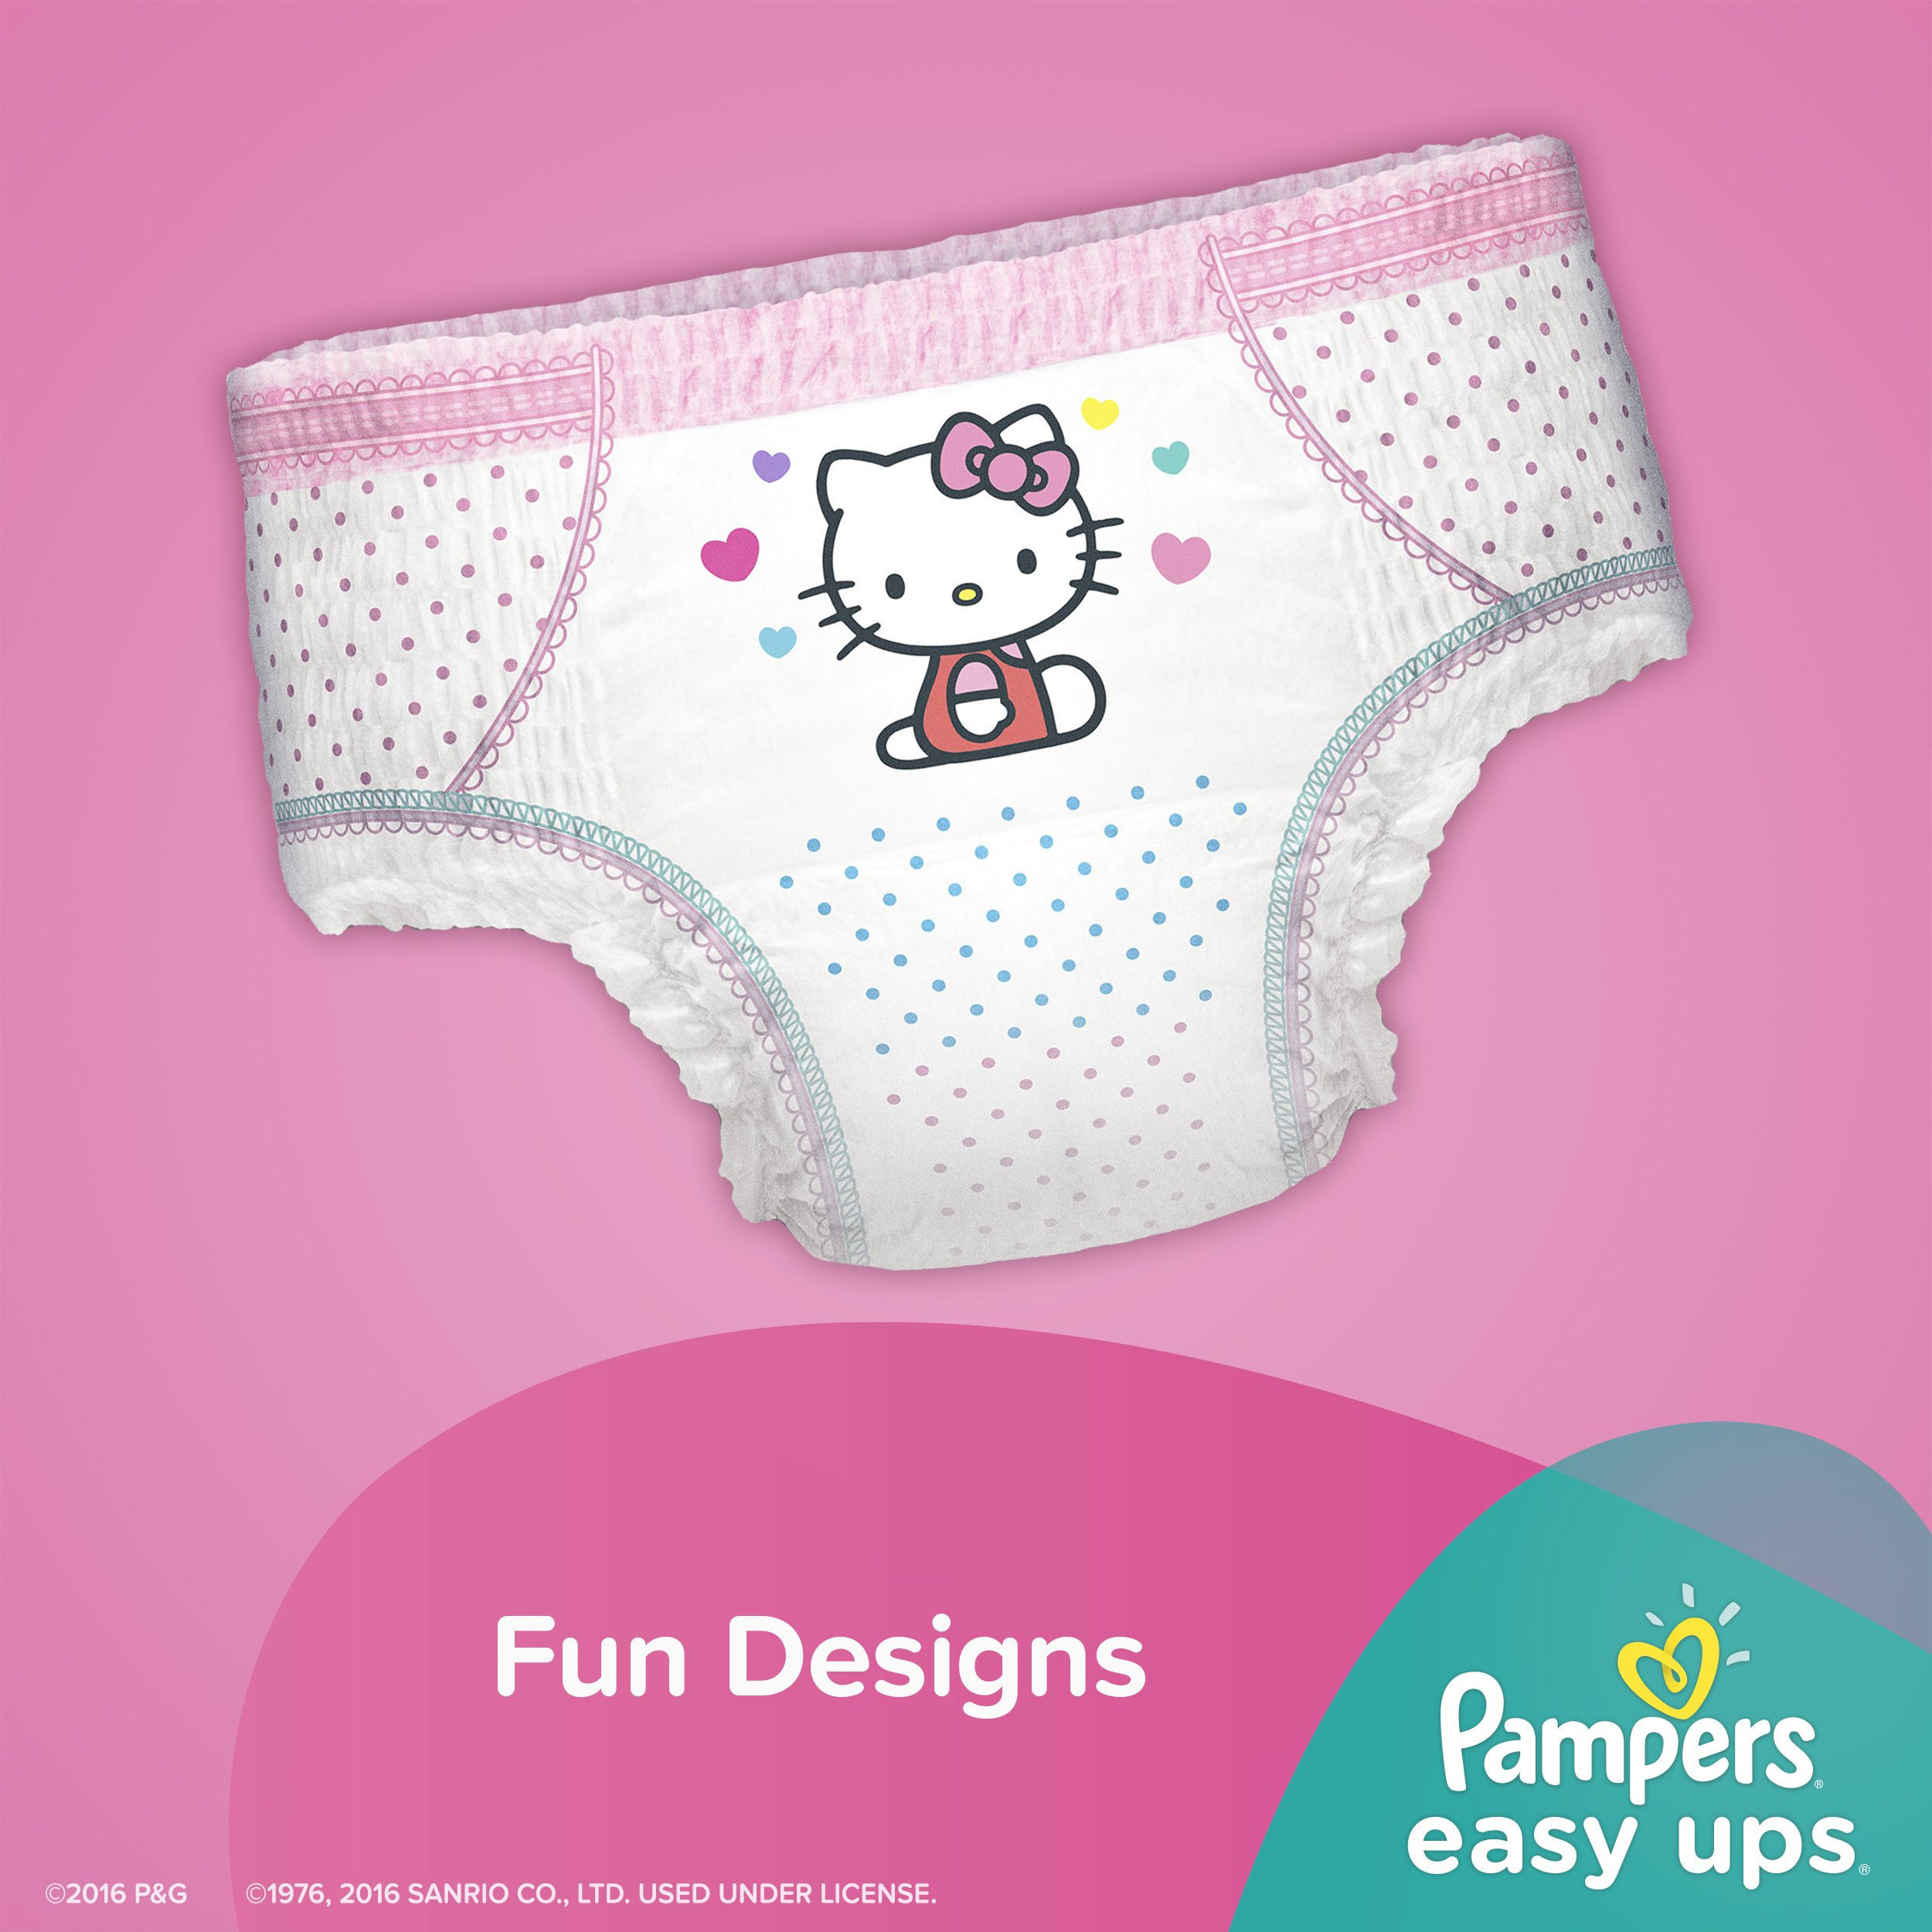 Pampers Easy Ups Training Pants Pull On Disposable Diapers for Girls Size 5 (3T-4T), 148 Count, ONE MONTH SUPPLY by Pampers (Image #4)